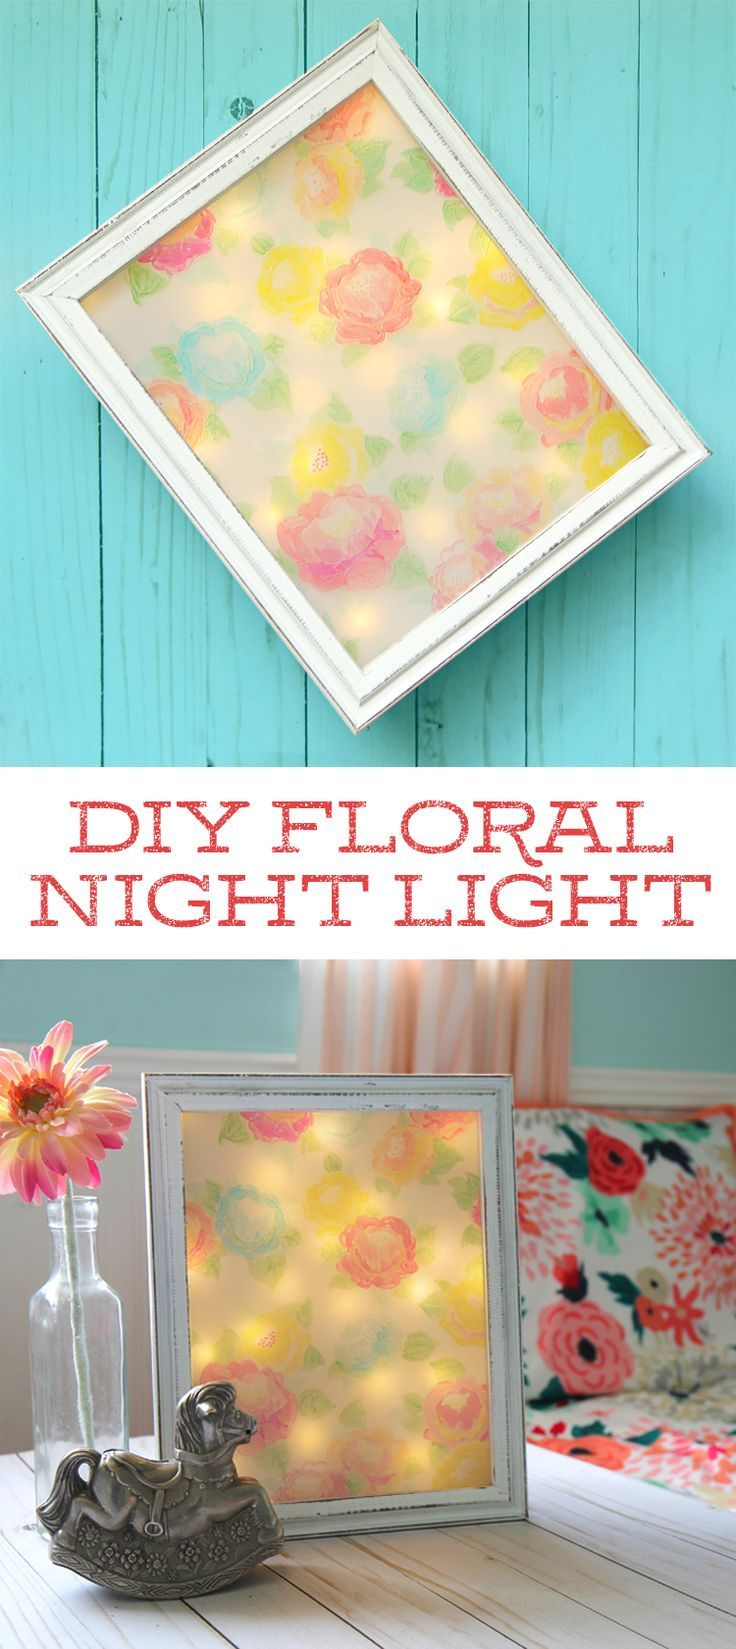 This pretty DIY night light is made using fairy lights, a shadow box and Spectrum Noir alcohol ink markers. You don't have to be an artist to draw the pretty flowers. Decor ideas for little girls rooms.